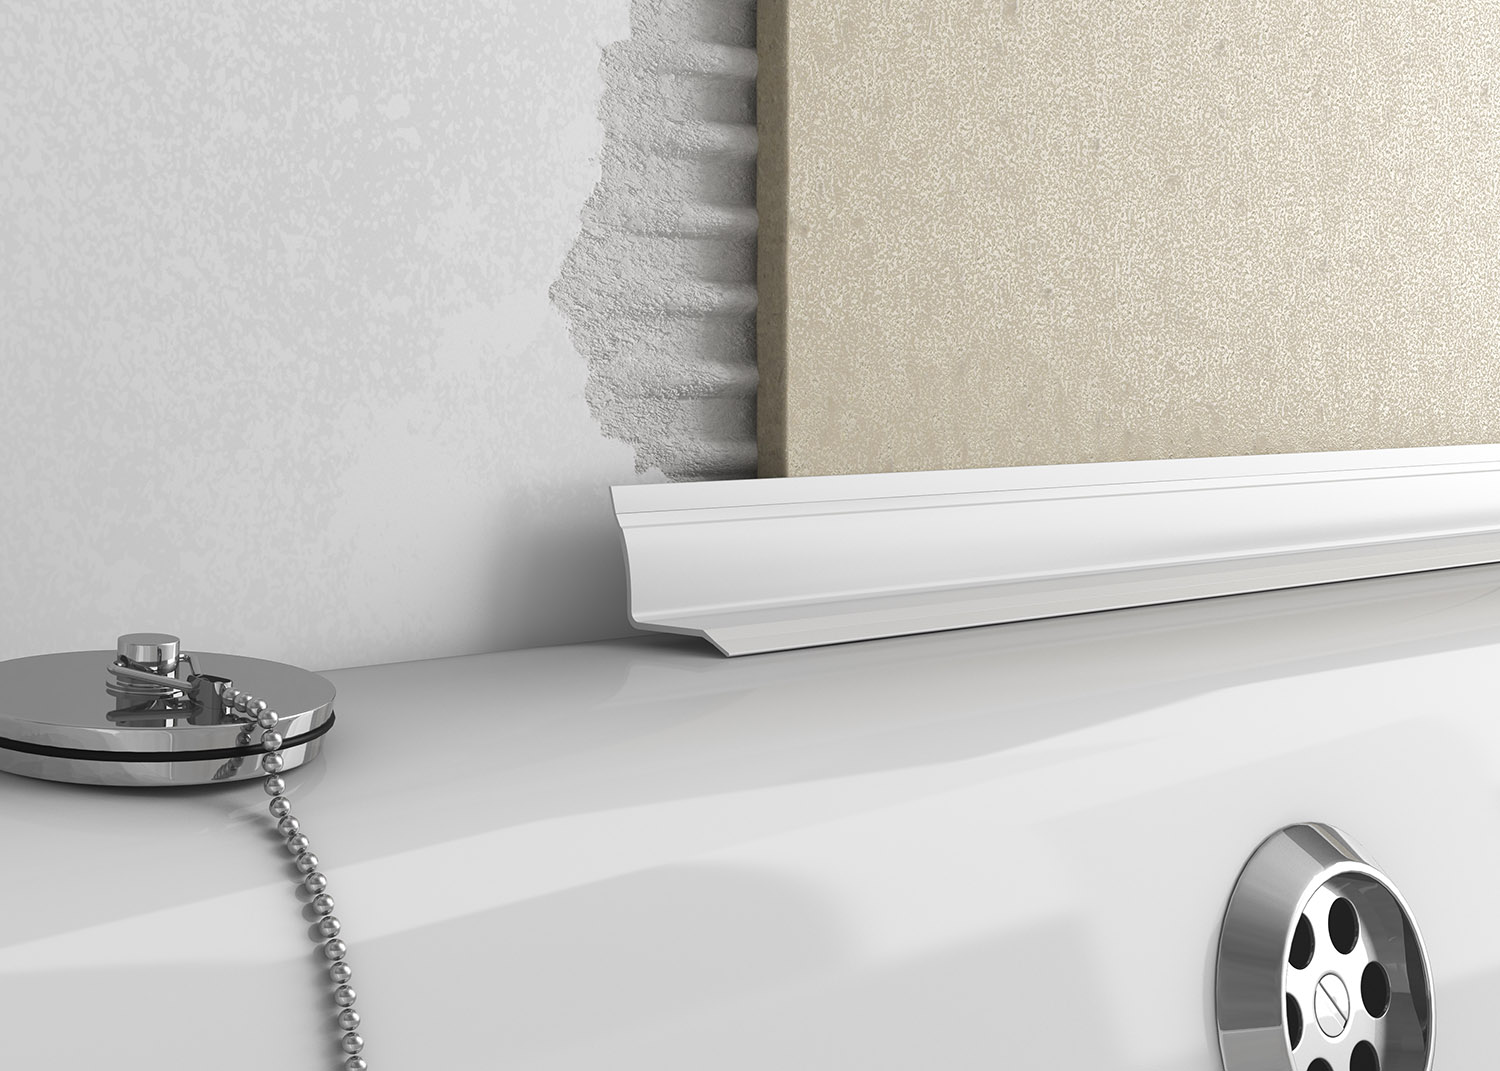 Overtile bath seal is a decorative finish between a tiled wall and a bath surface.